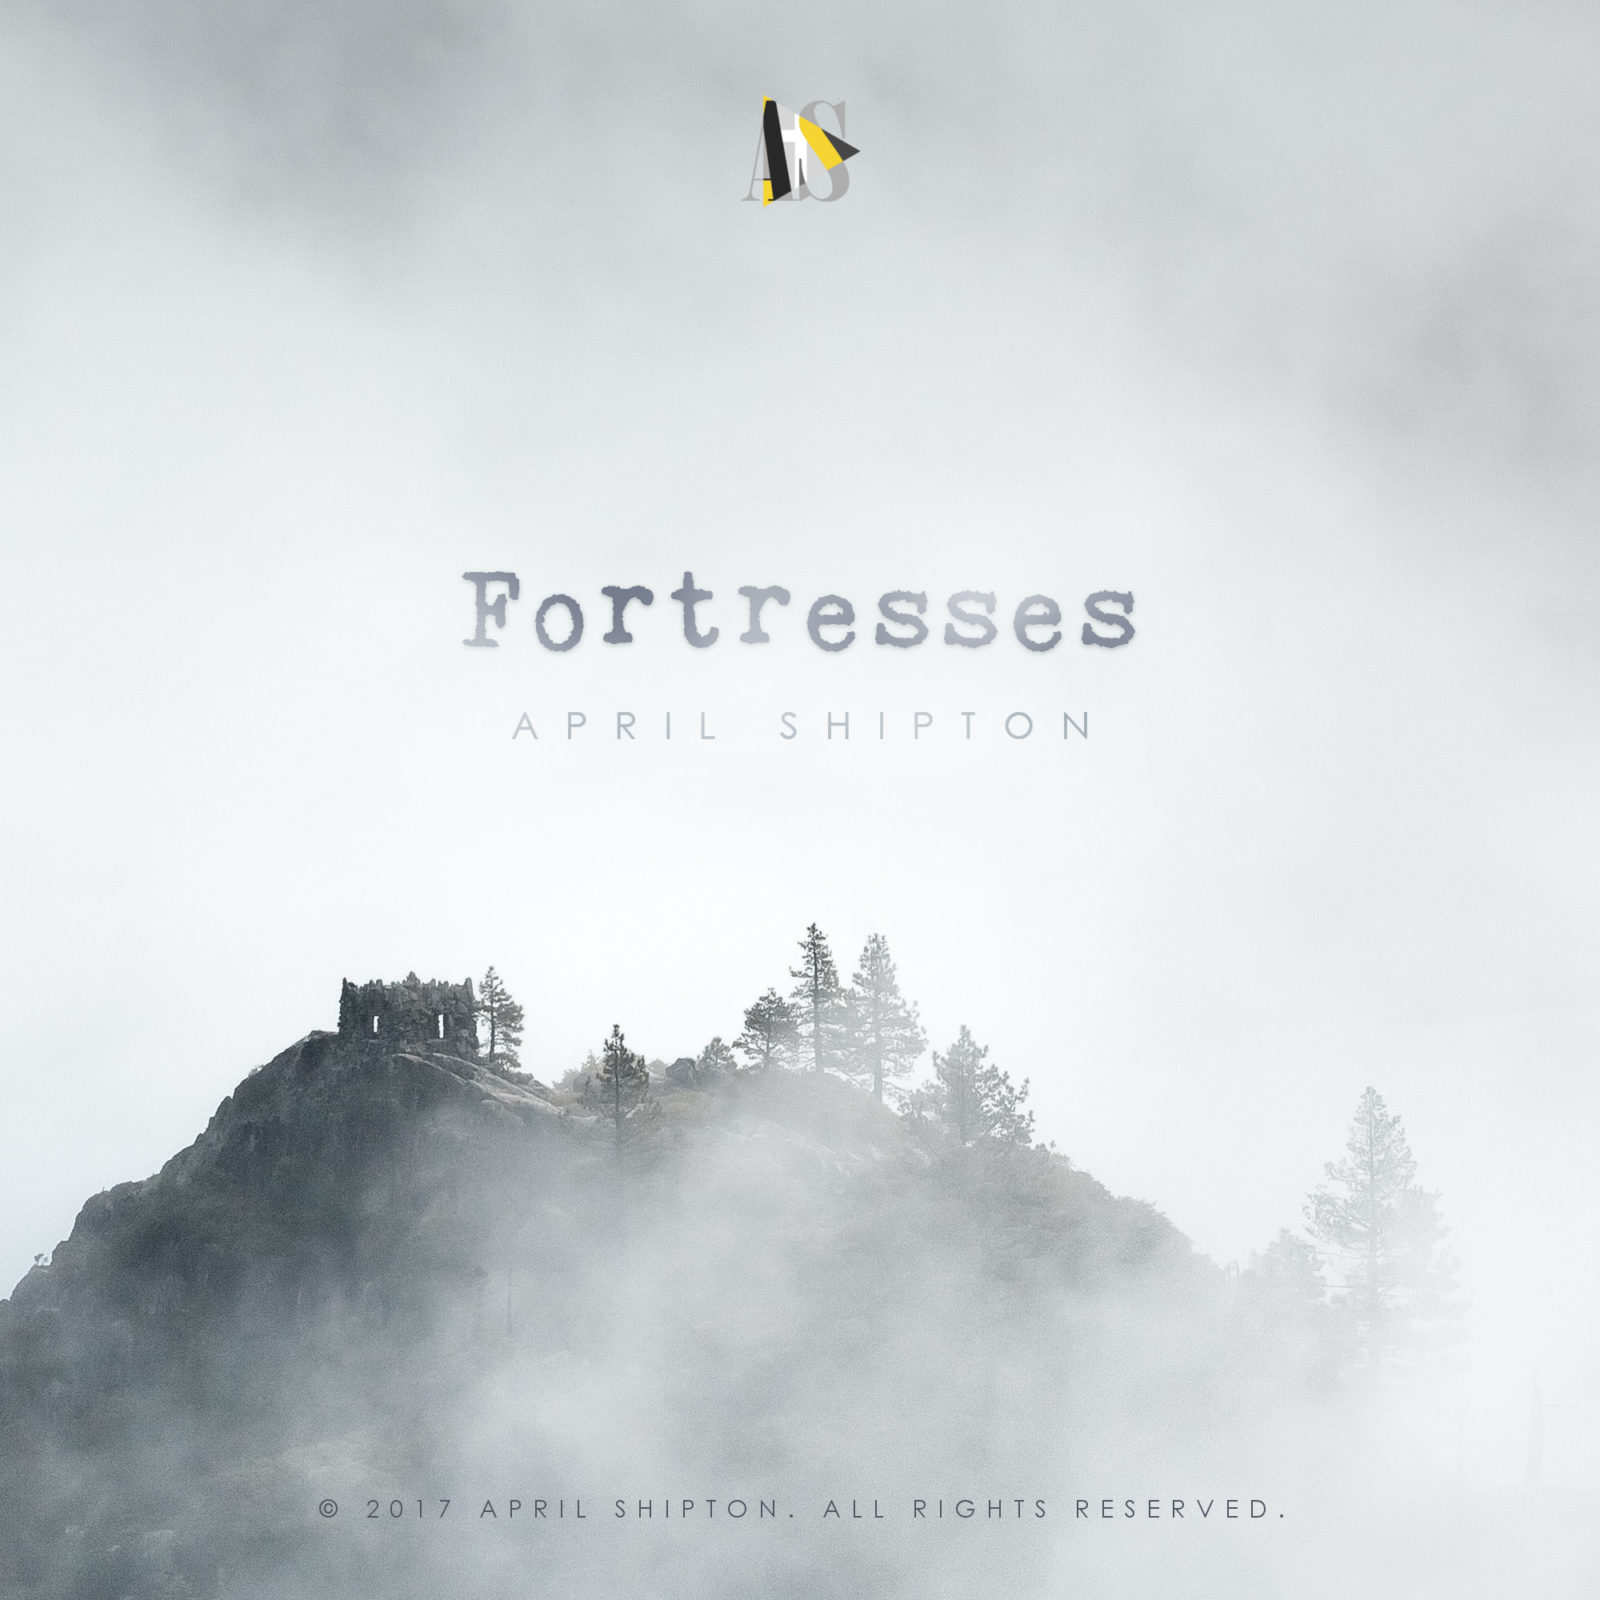 Fortresses: A Mother and Daughter Story